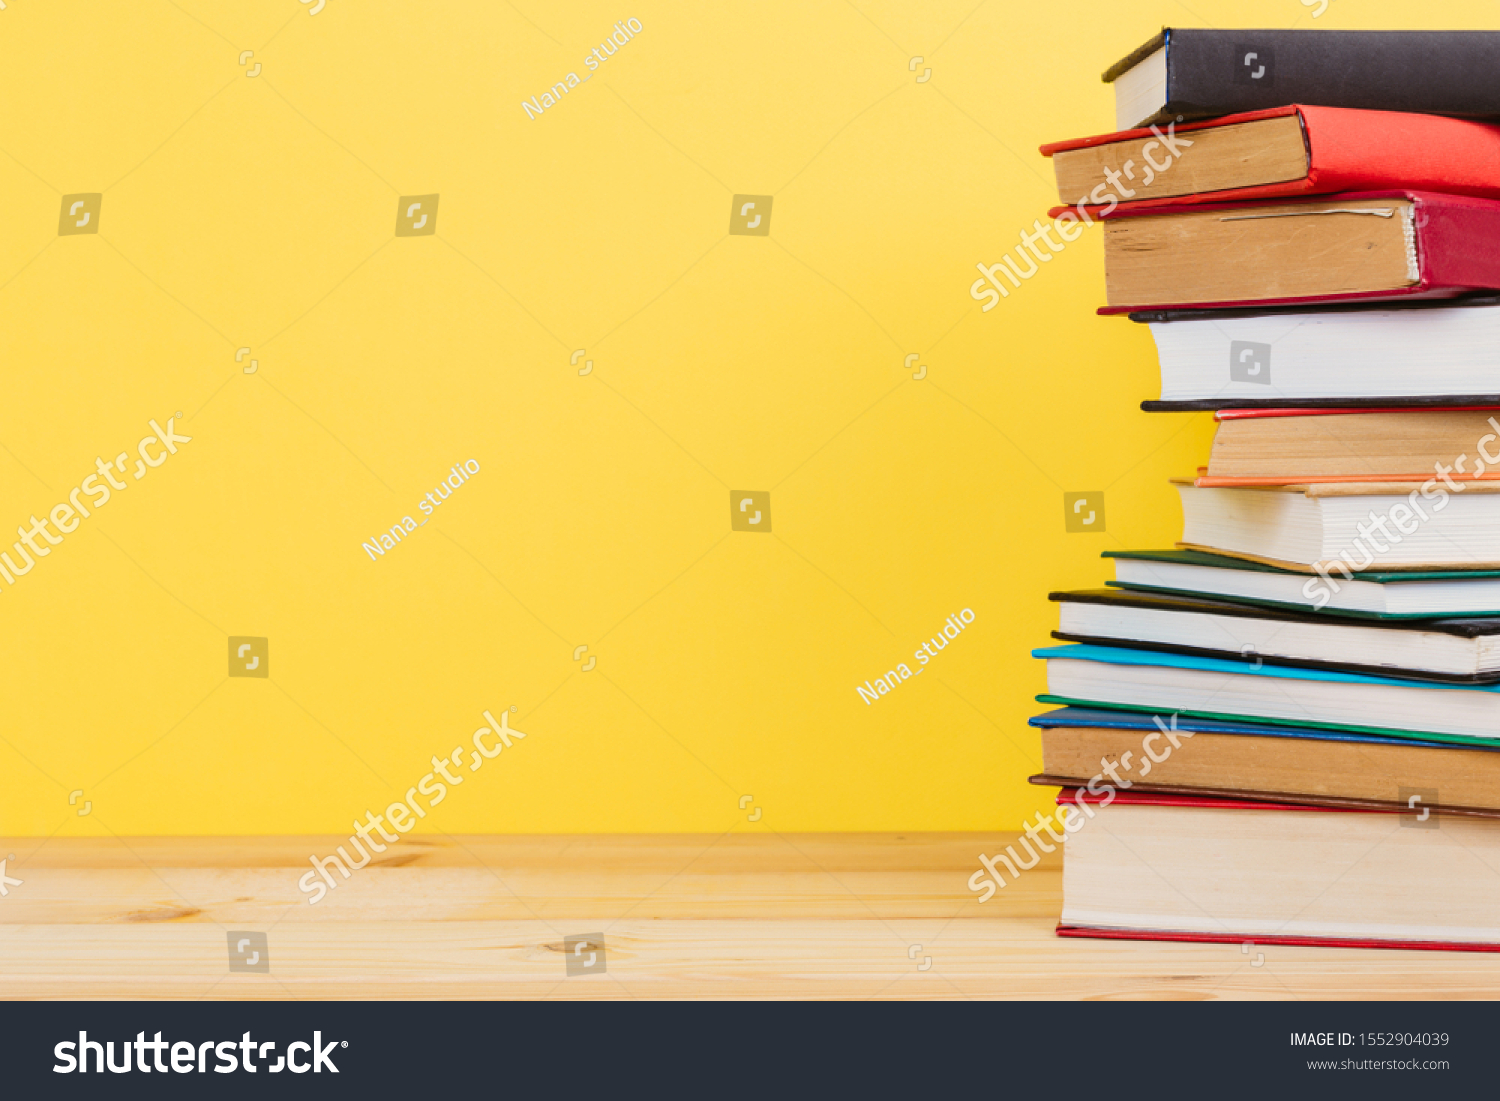 Simple Simple composition of many hardback books, unprocessed books on a wooden table and a yellow background. back to school. Copy space. Education. #1552904039